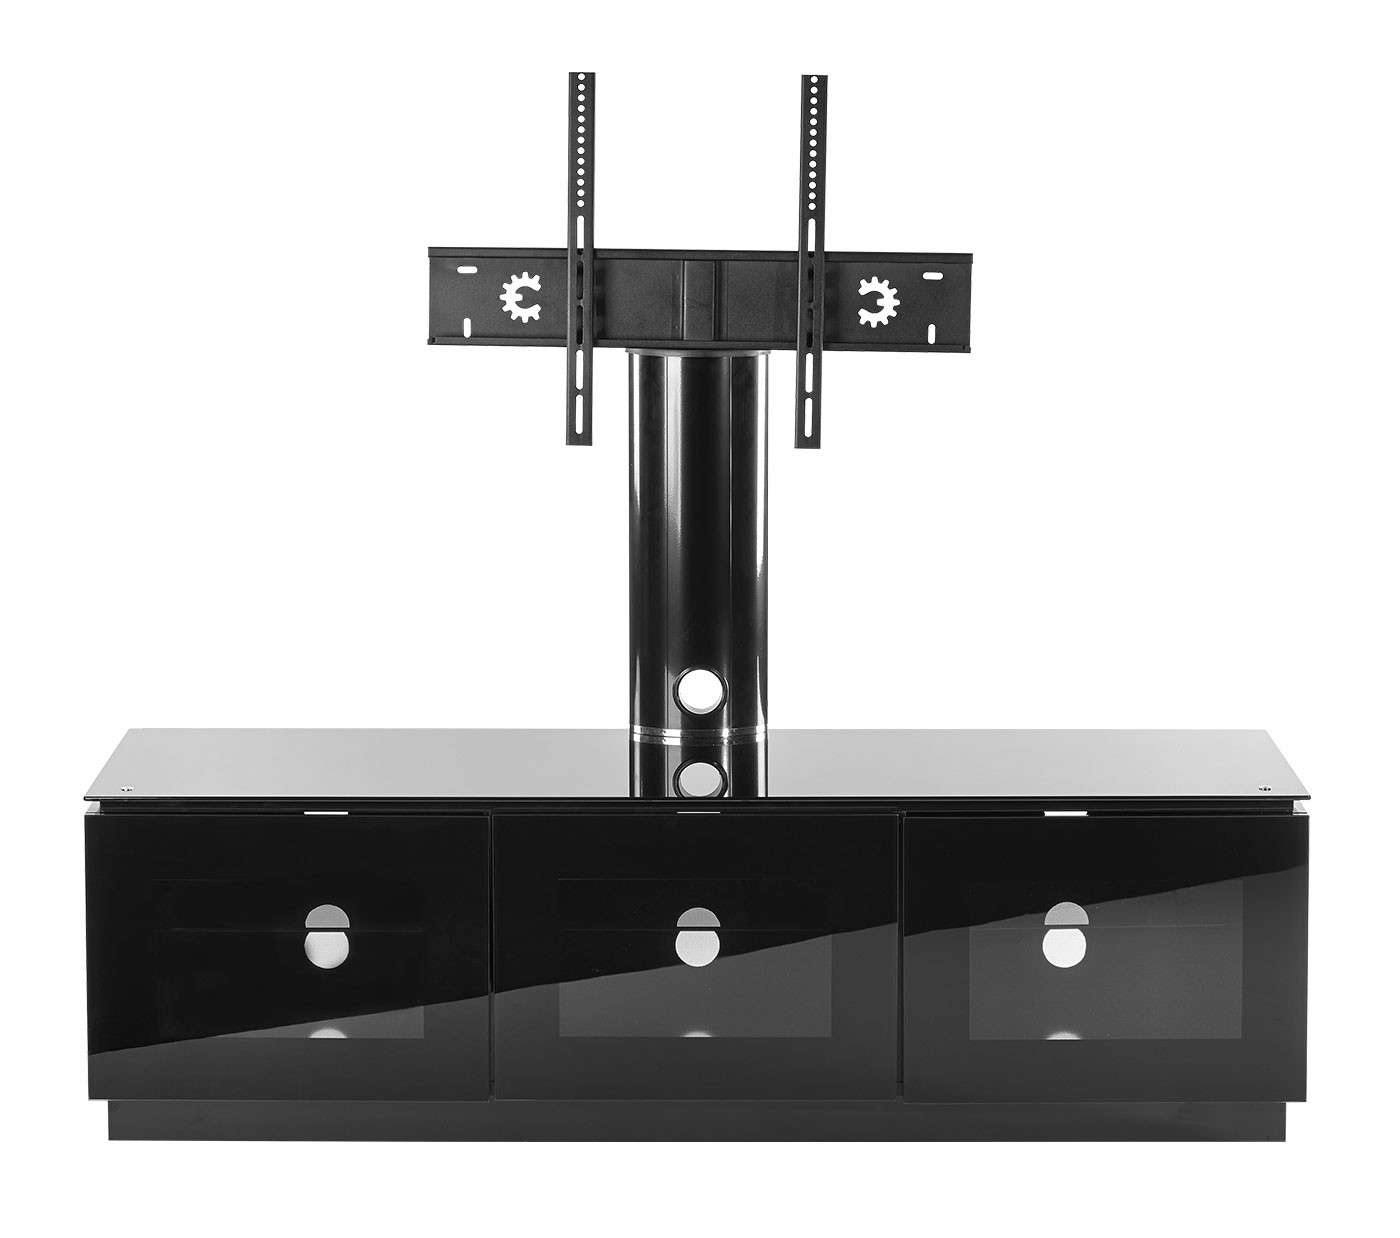 Black Tv Cabinet With Mount For Up To 65 Inch Tv | Mmt D1500 Xarm In Black Gloss Tv Stands (View 9 of 20)